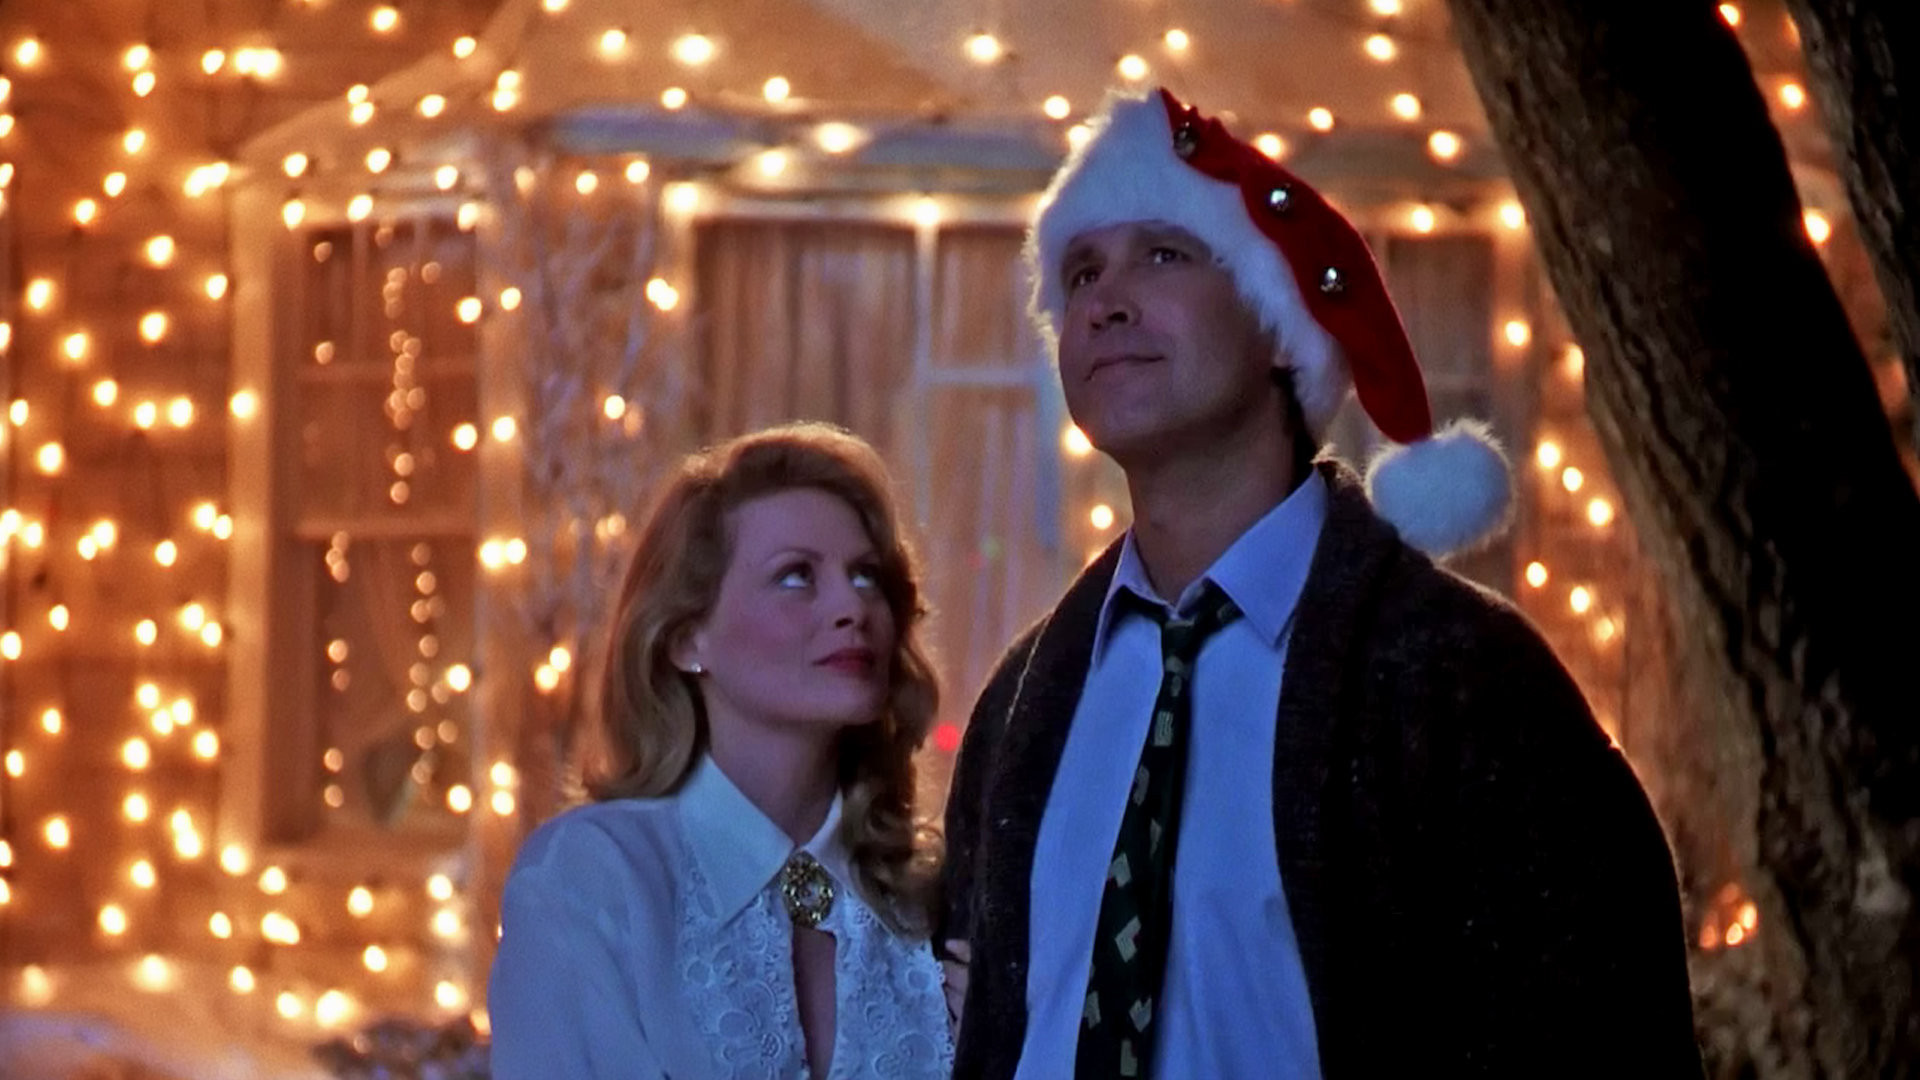 National Lampoons Christmas Vacation Wallpaper 1920x1080